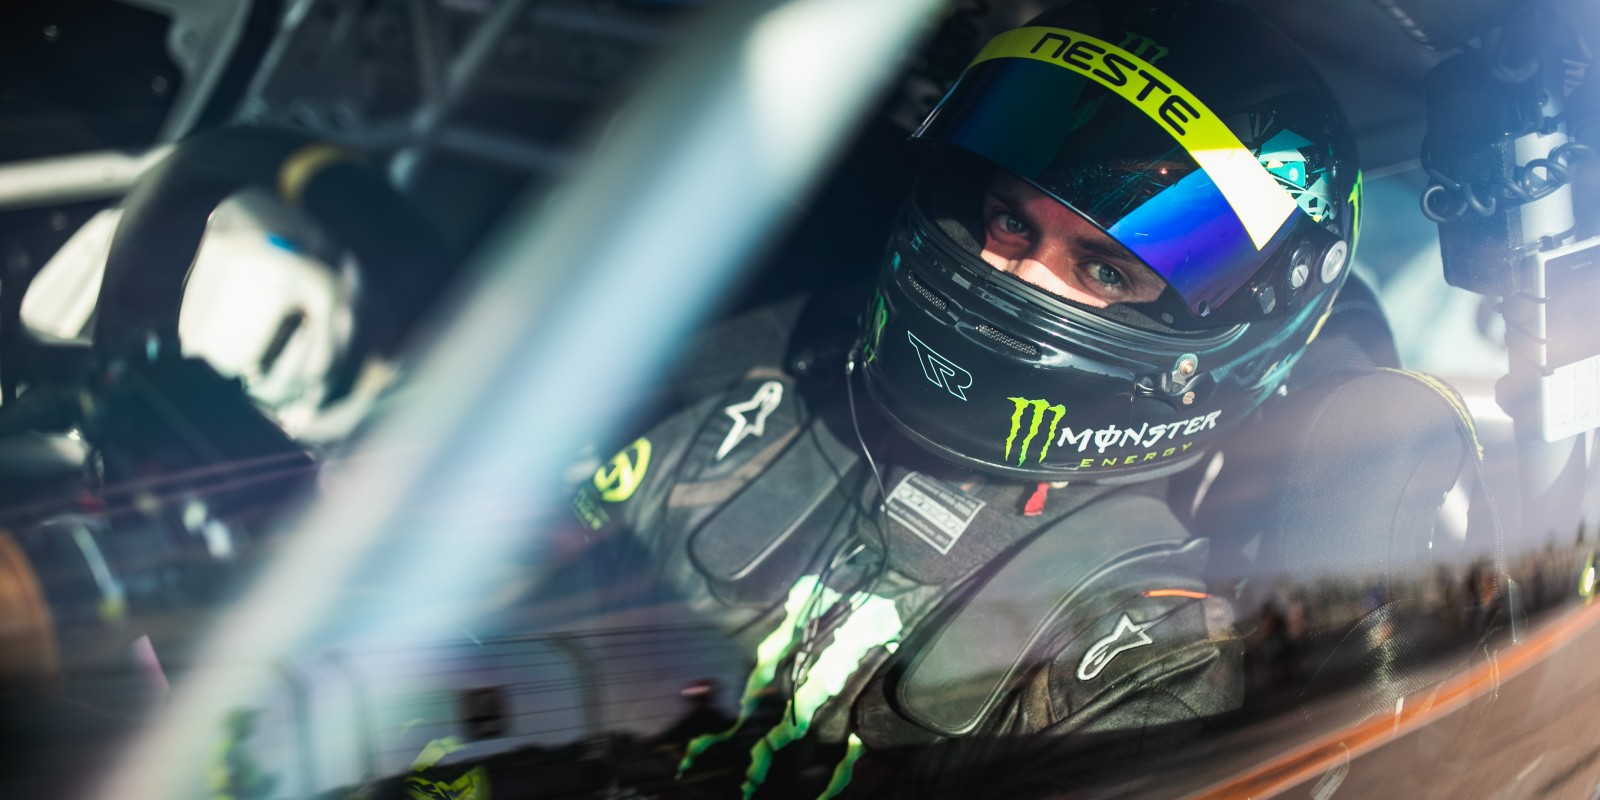 Dream 2 Drive first racing weekend with the new Monster Energy livery